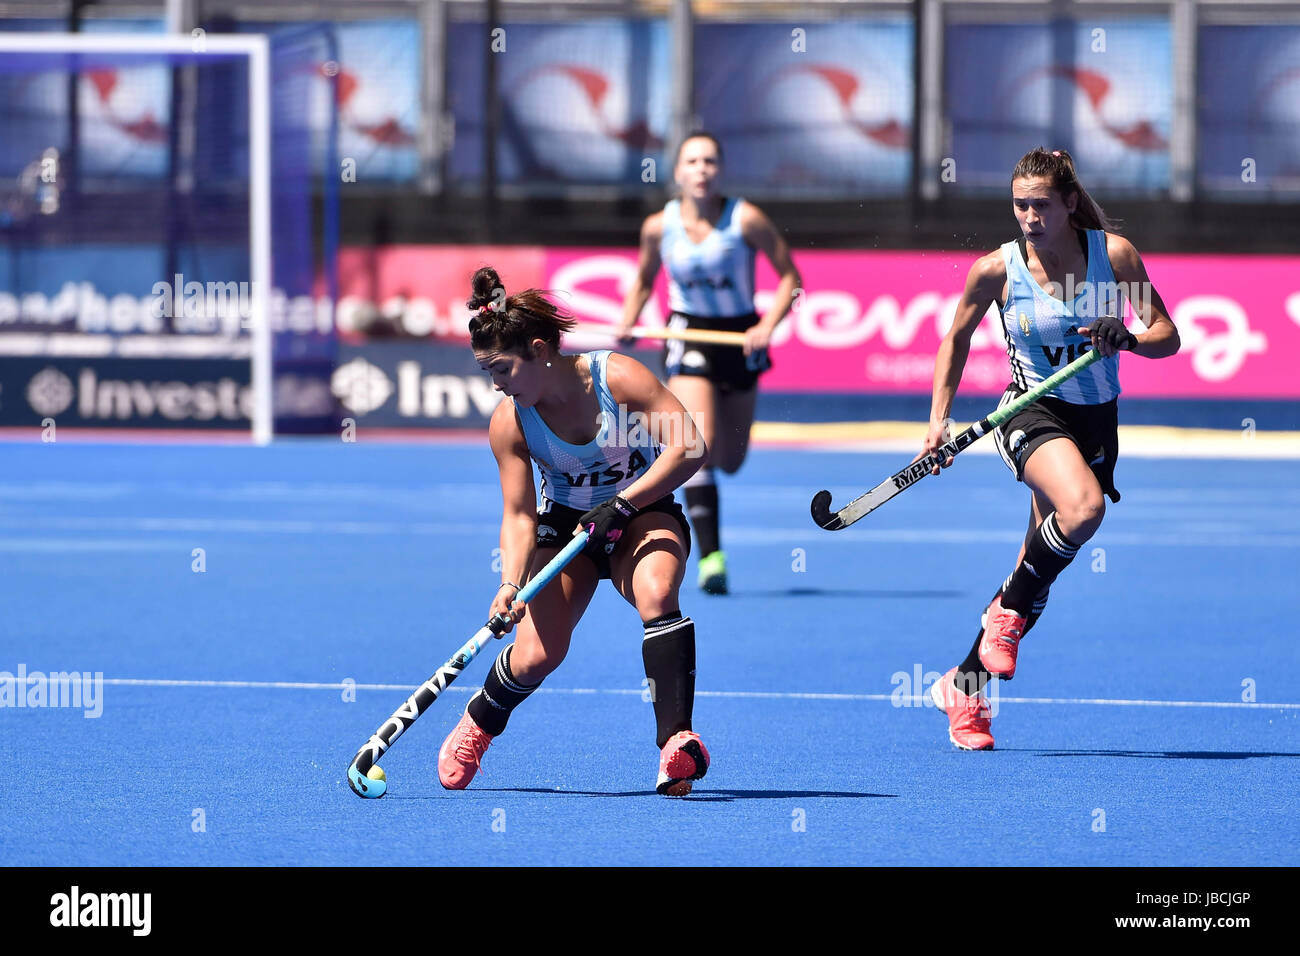 LONDON ENGLAND - June 10, 2017: Maria Granatto ties passing the ball to her team mate during 2017 Investec International - Stock Image